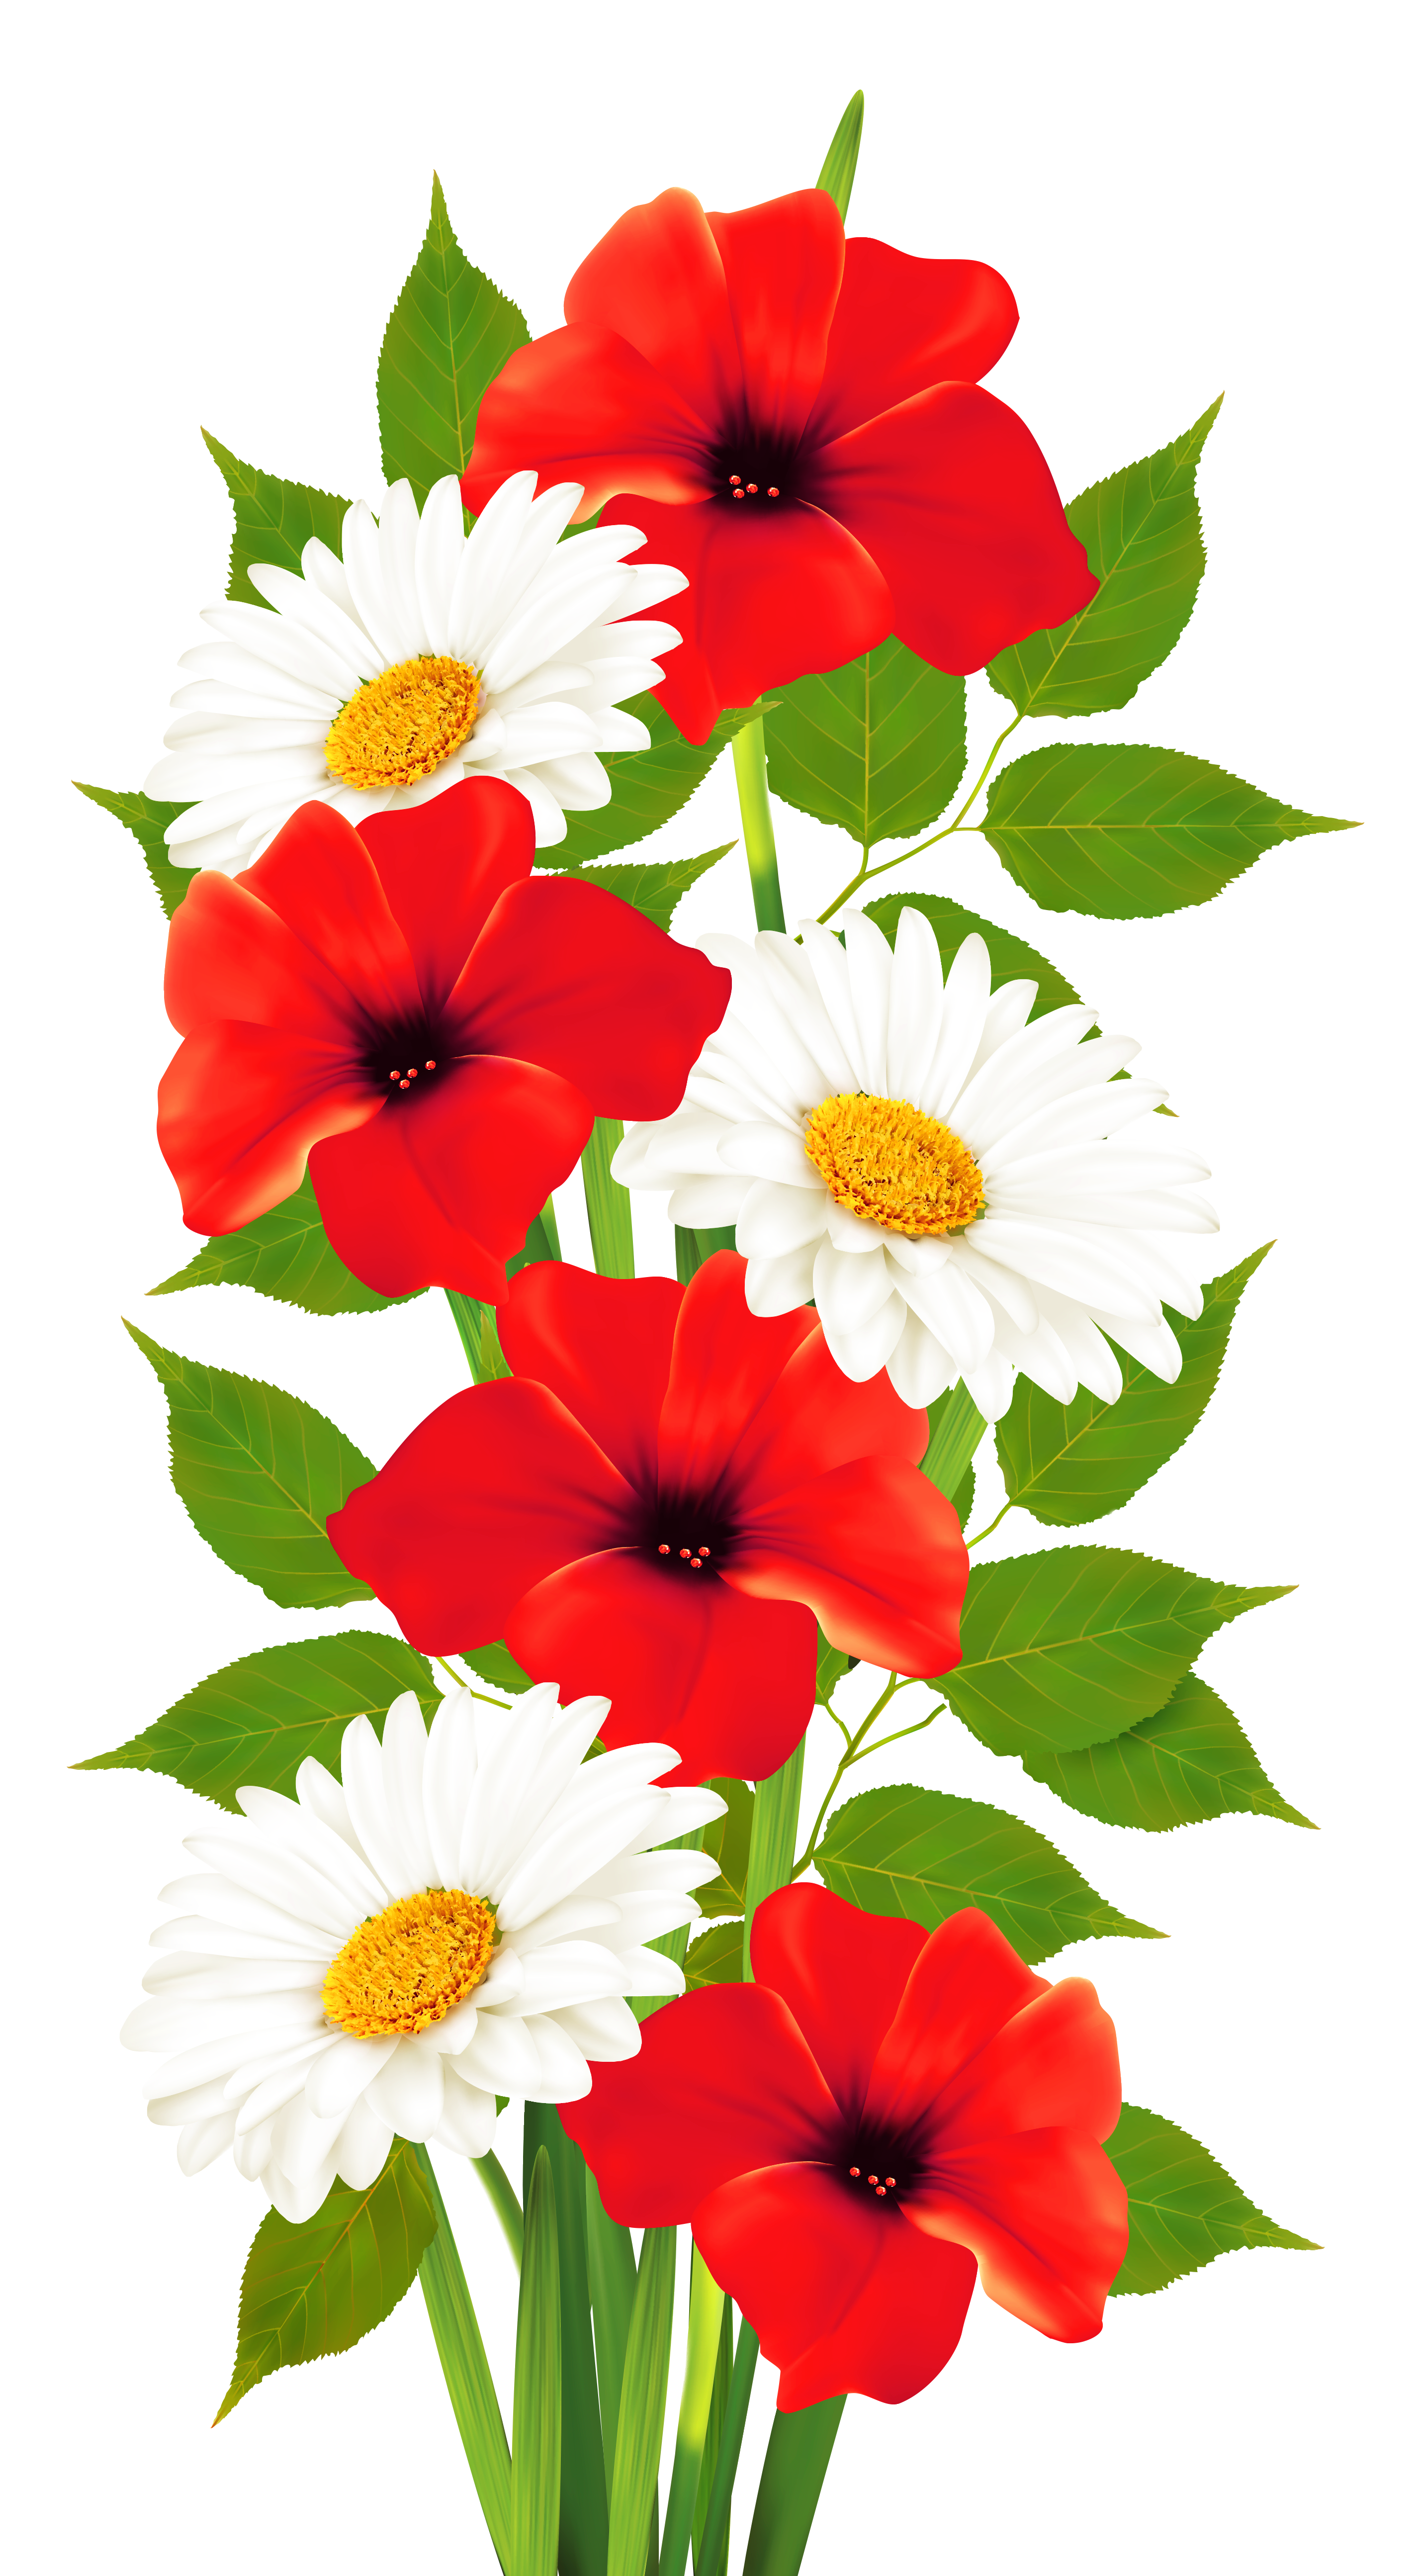 Poppy flower clipart png free Poppies and Daisies Transparent PNG Clipart | Цветы | Pinterest ... png free